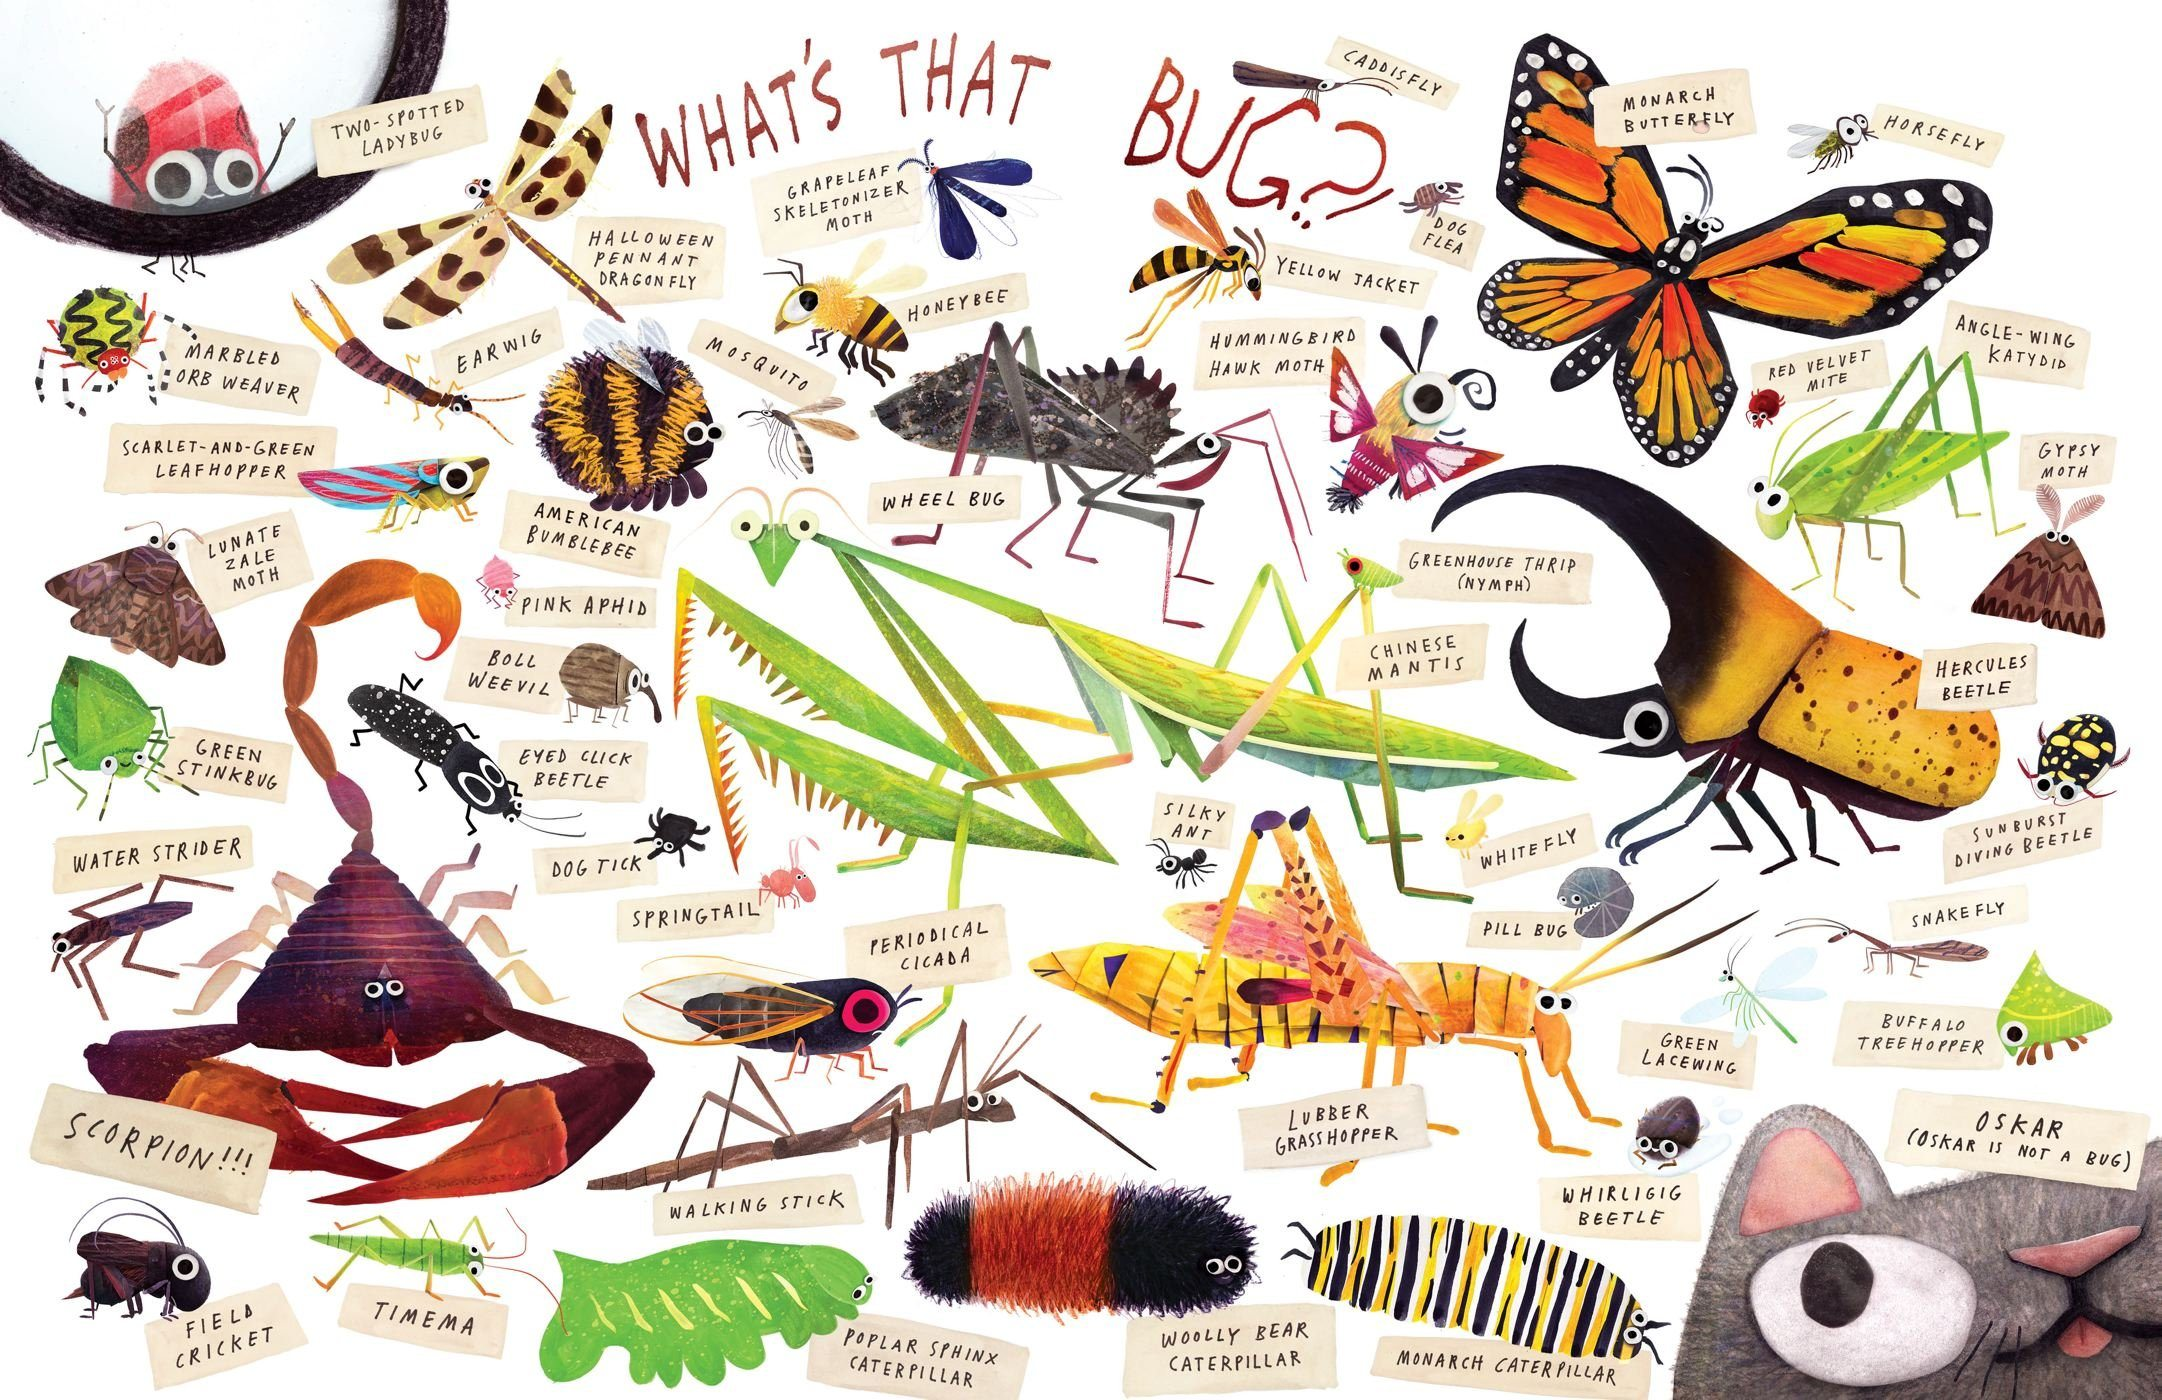 Some Bugs interior spread